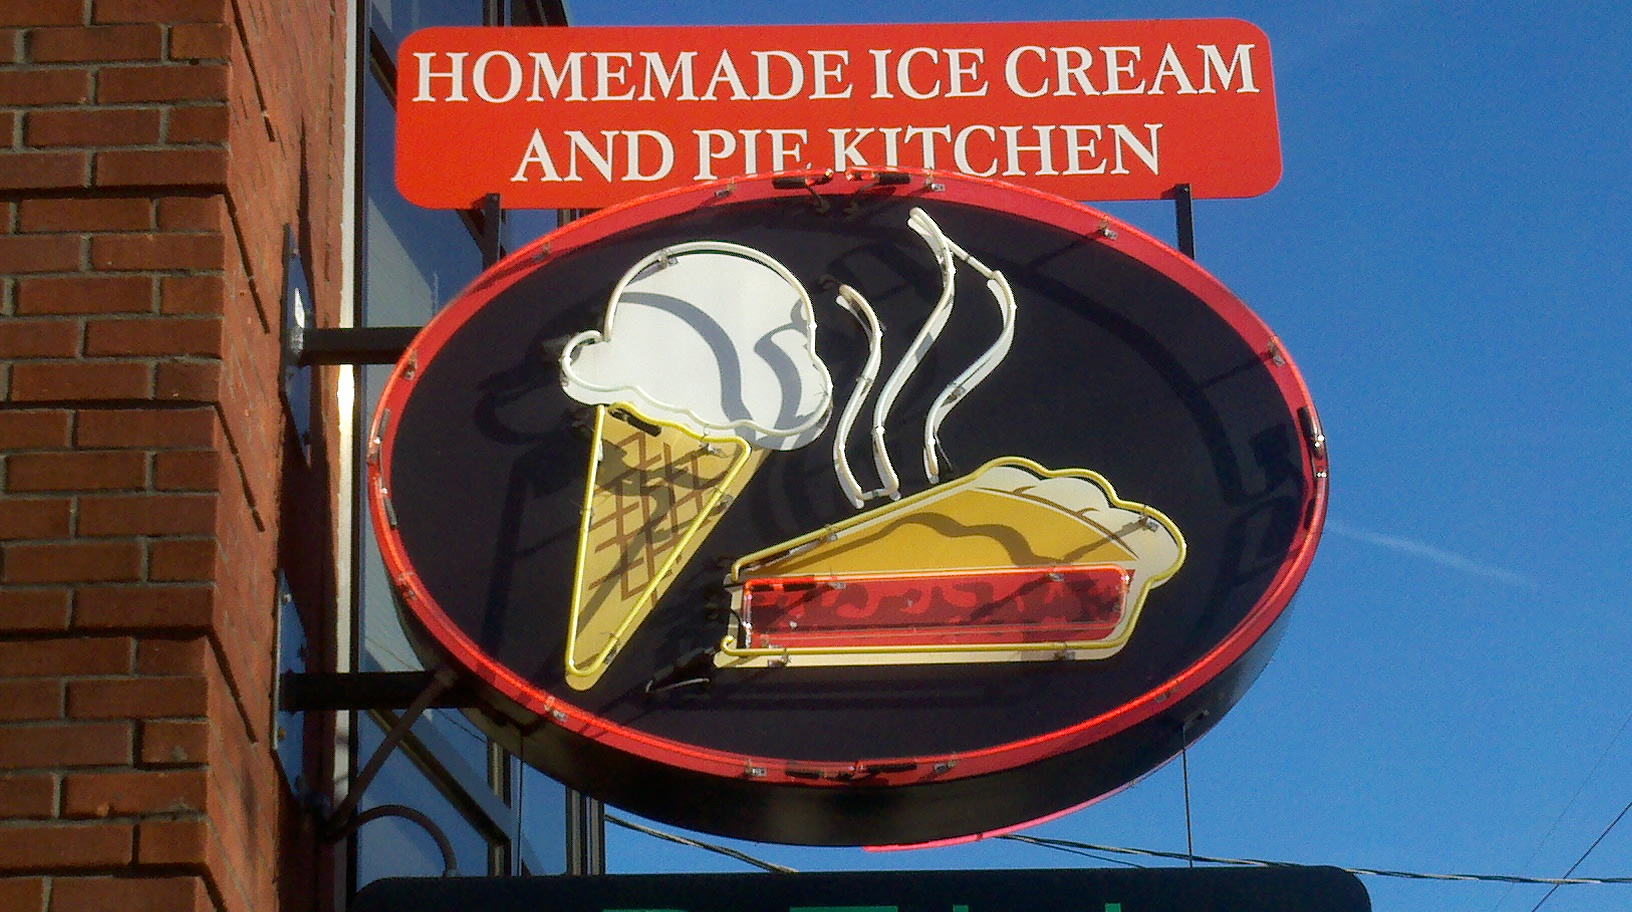 Homemade Ice Cream And Pie Kitchen